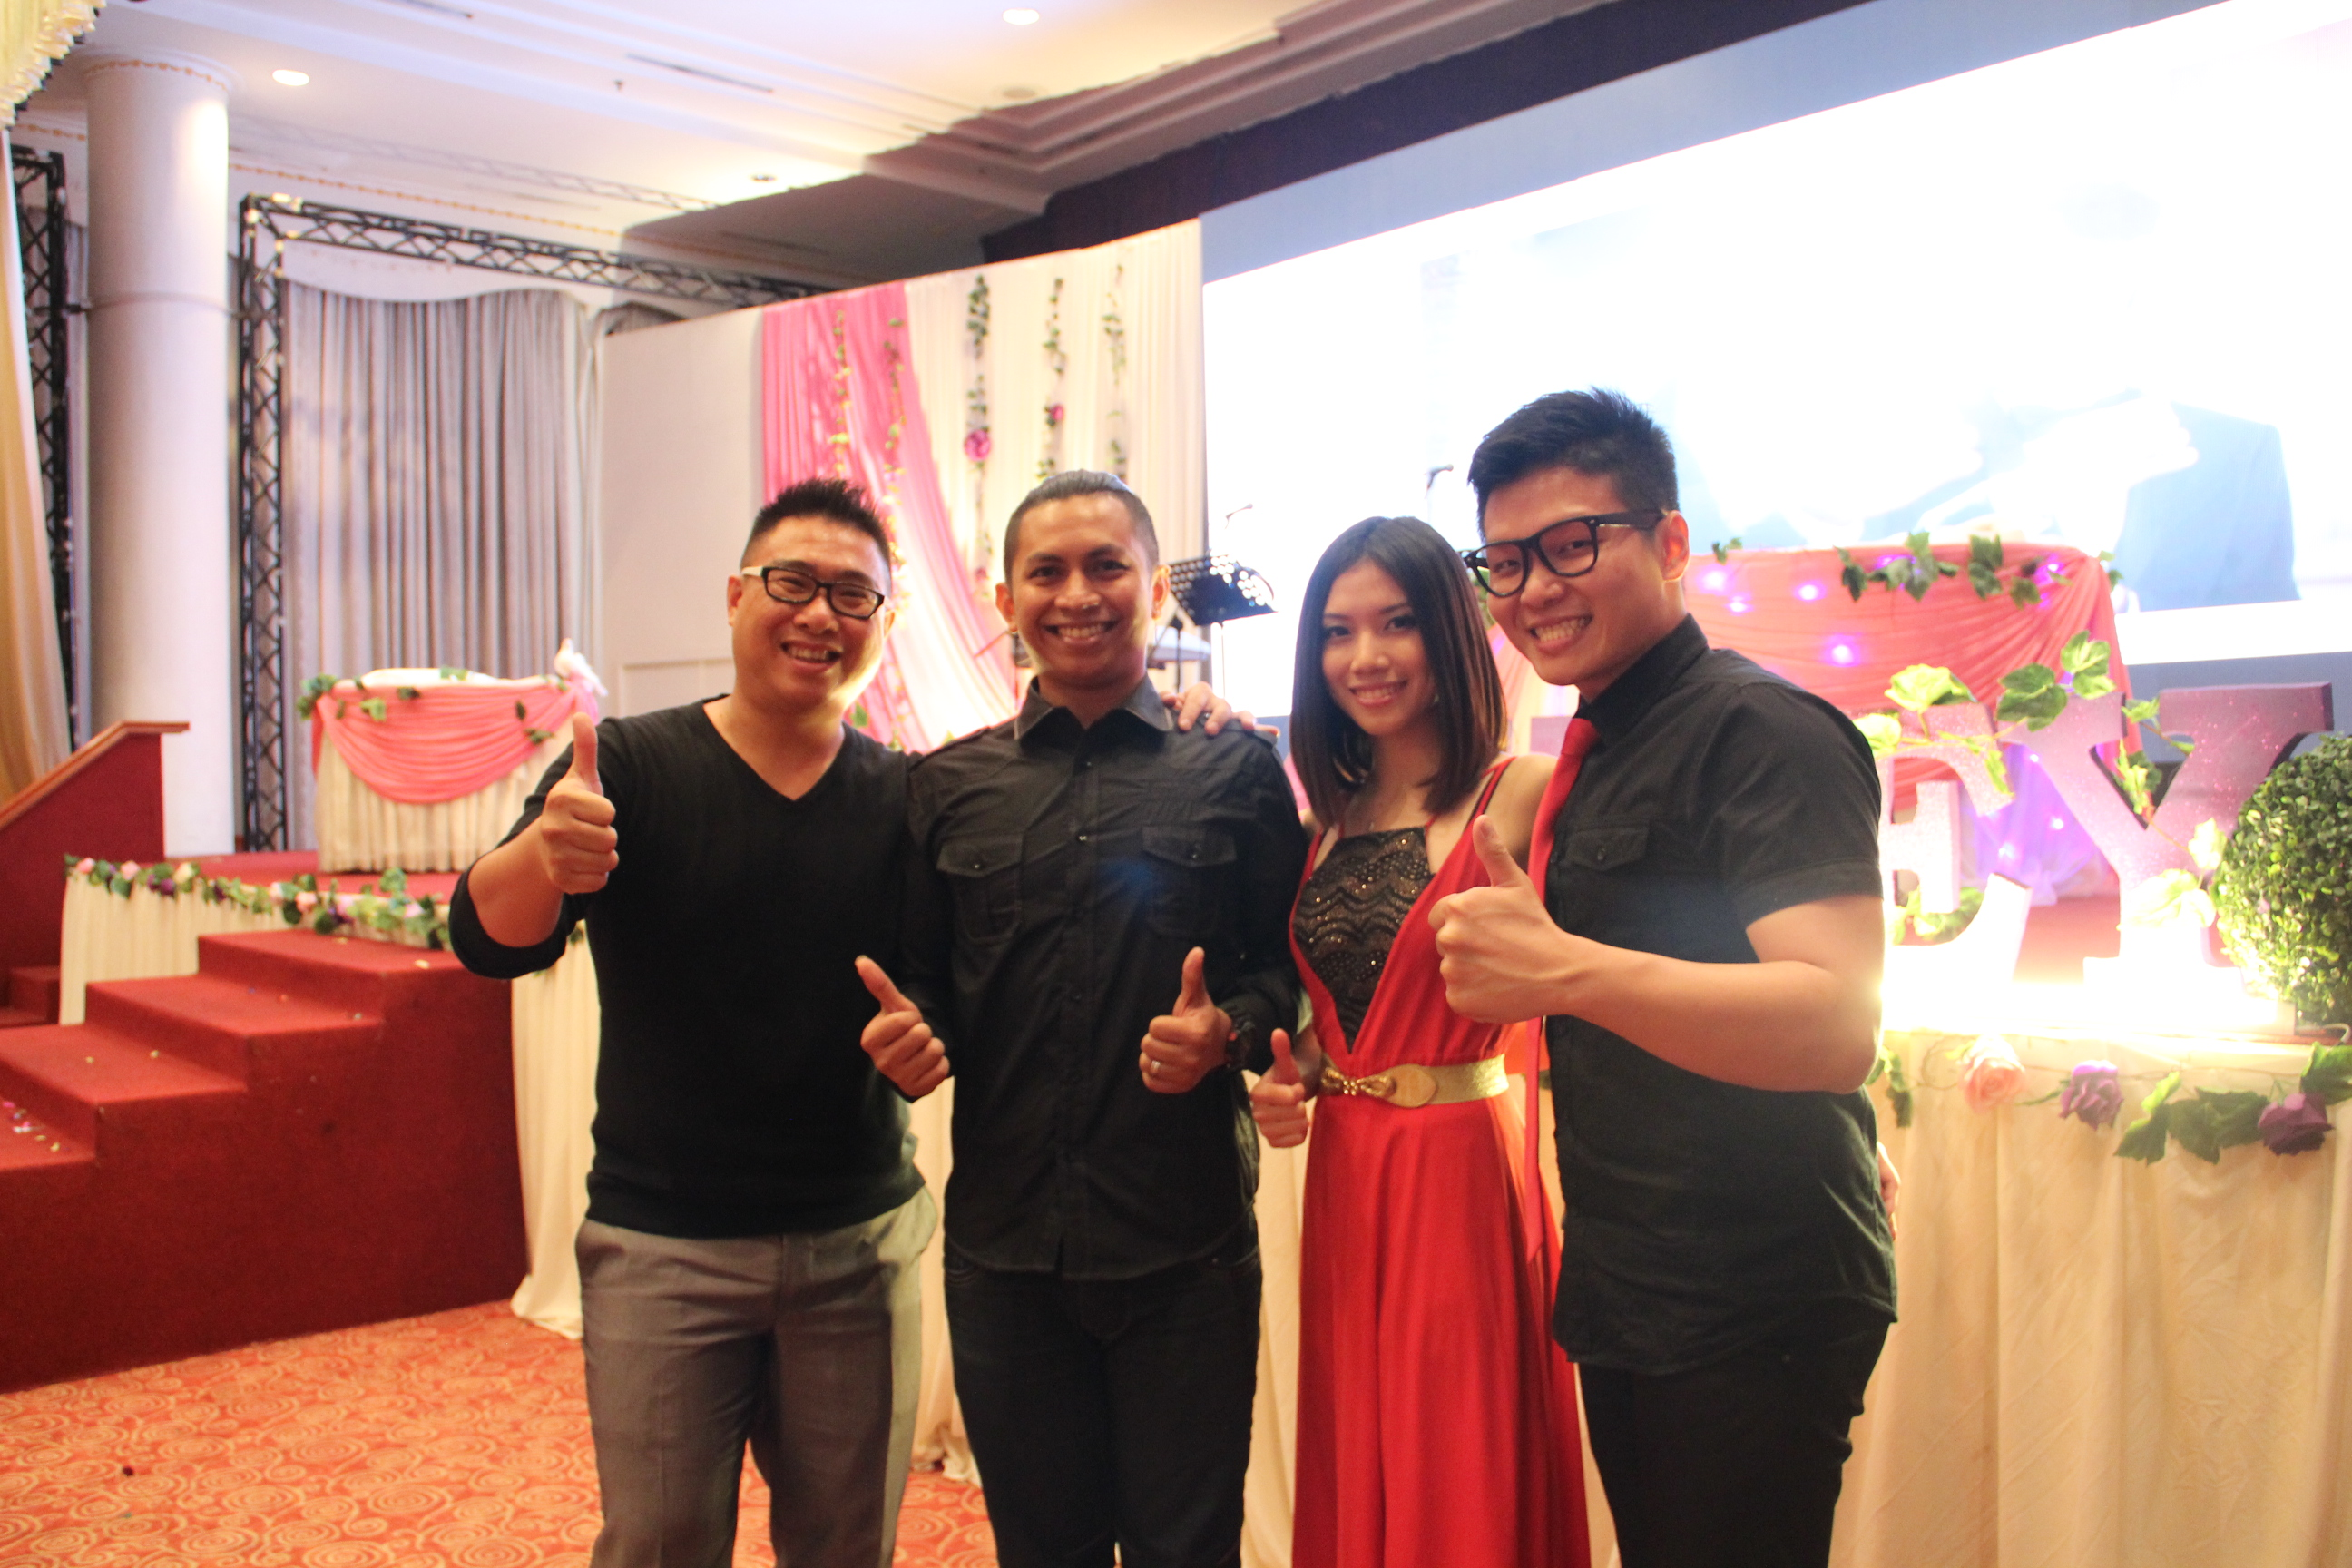 chiang band laurels s singapore laurel yong bands in live music wedding